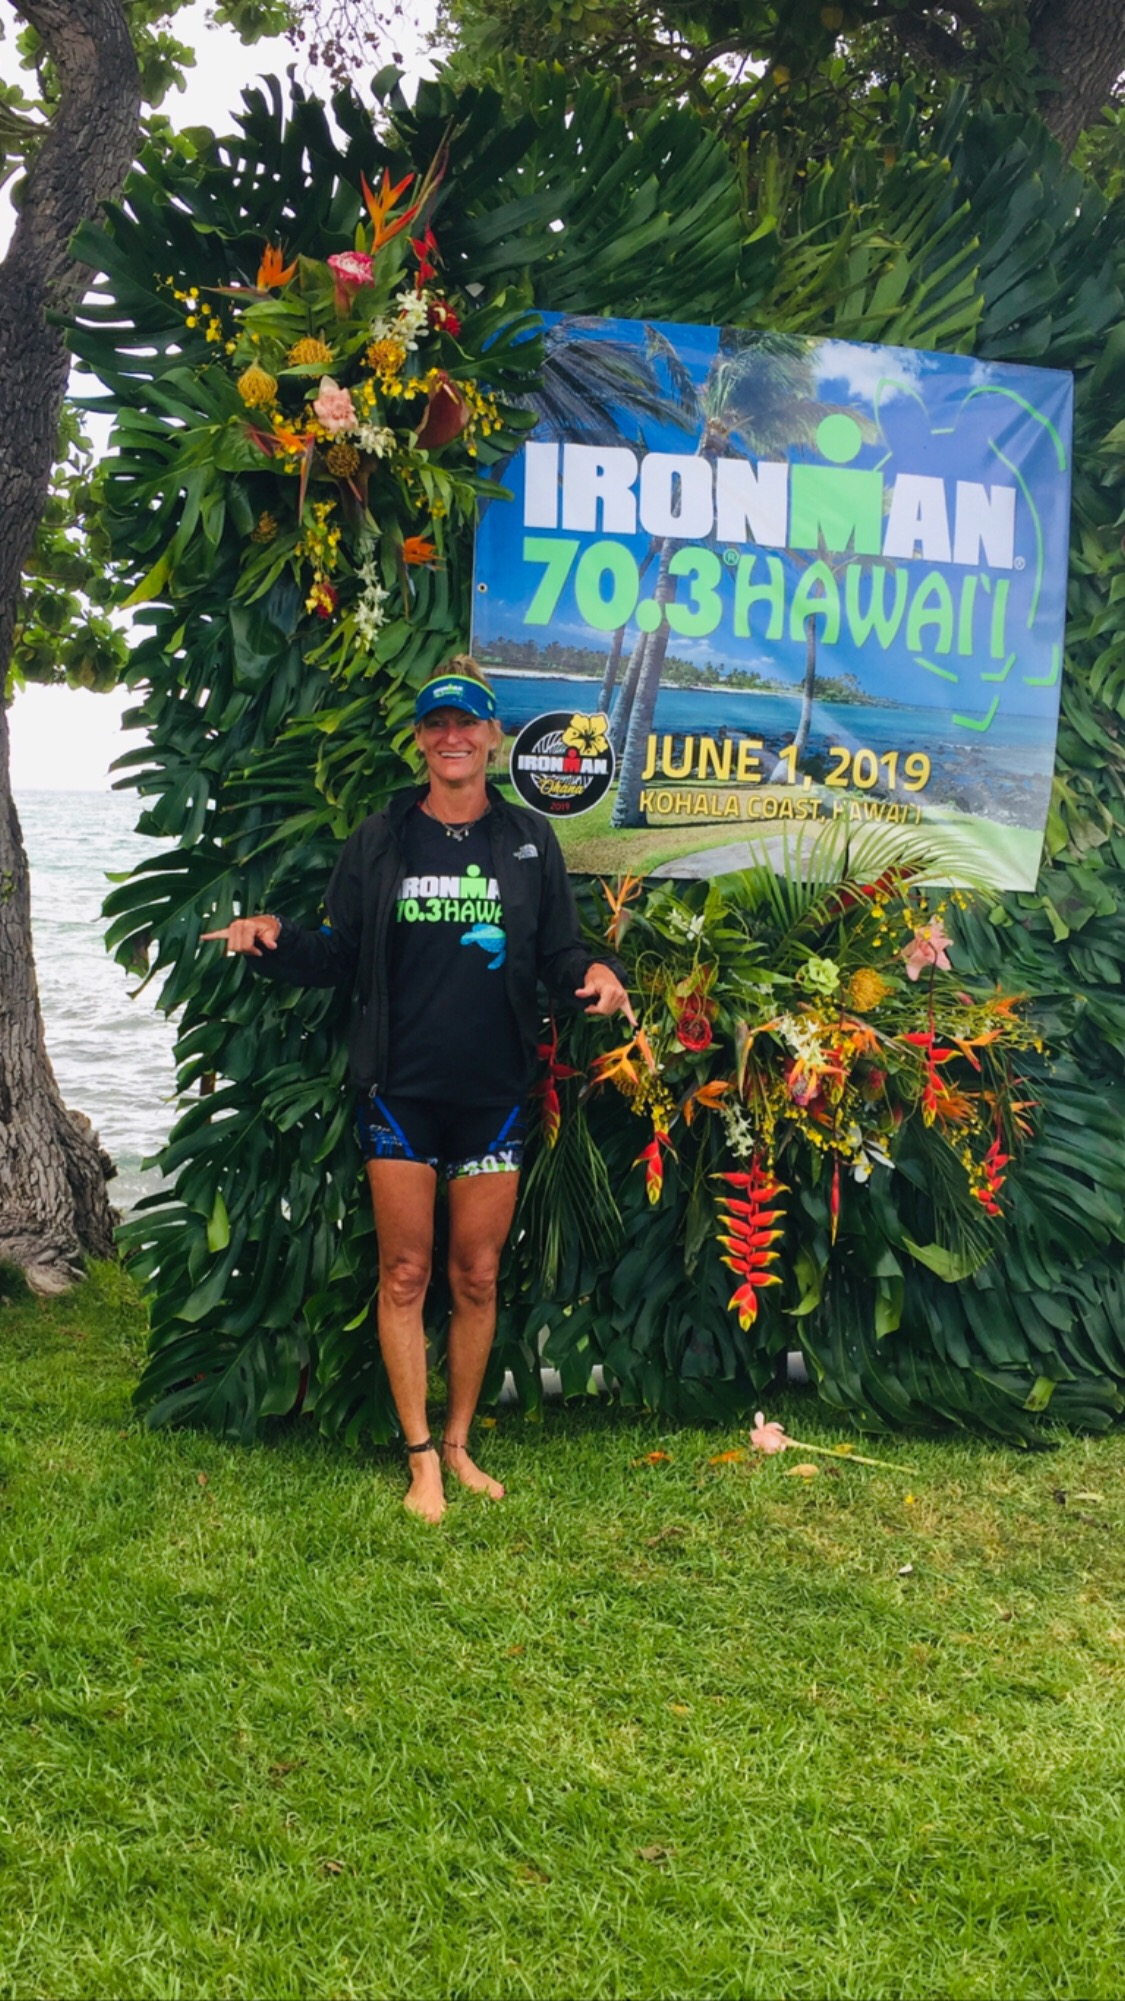 Hawaii 70.3 Half Ironman 2019